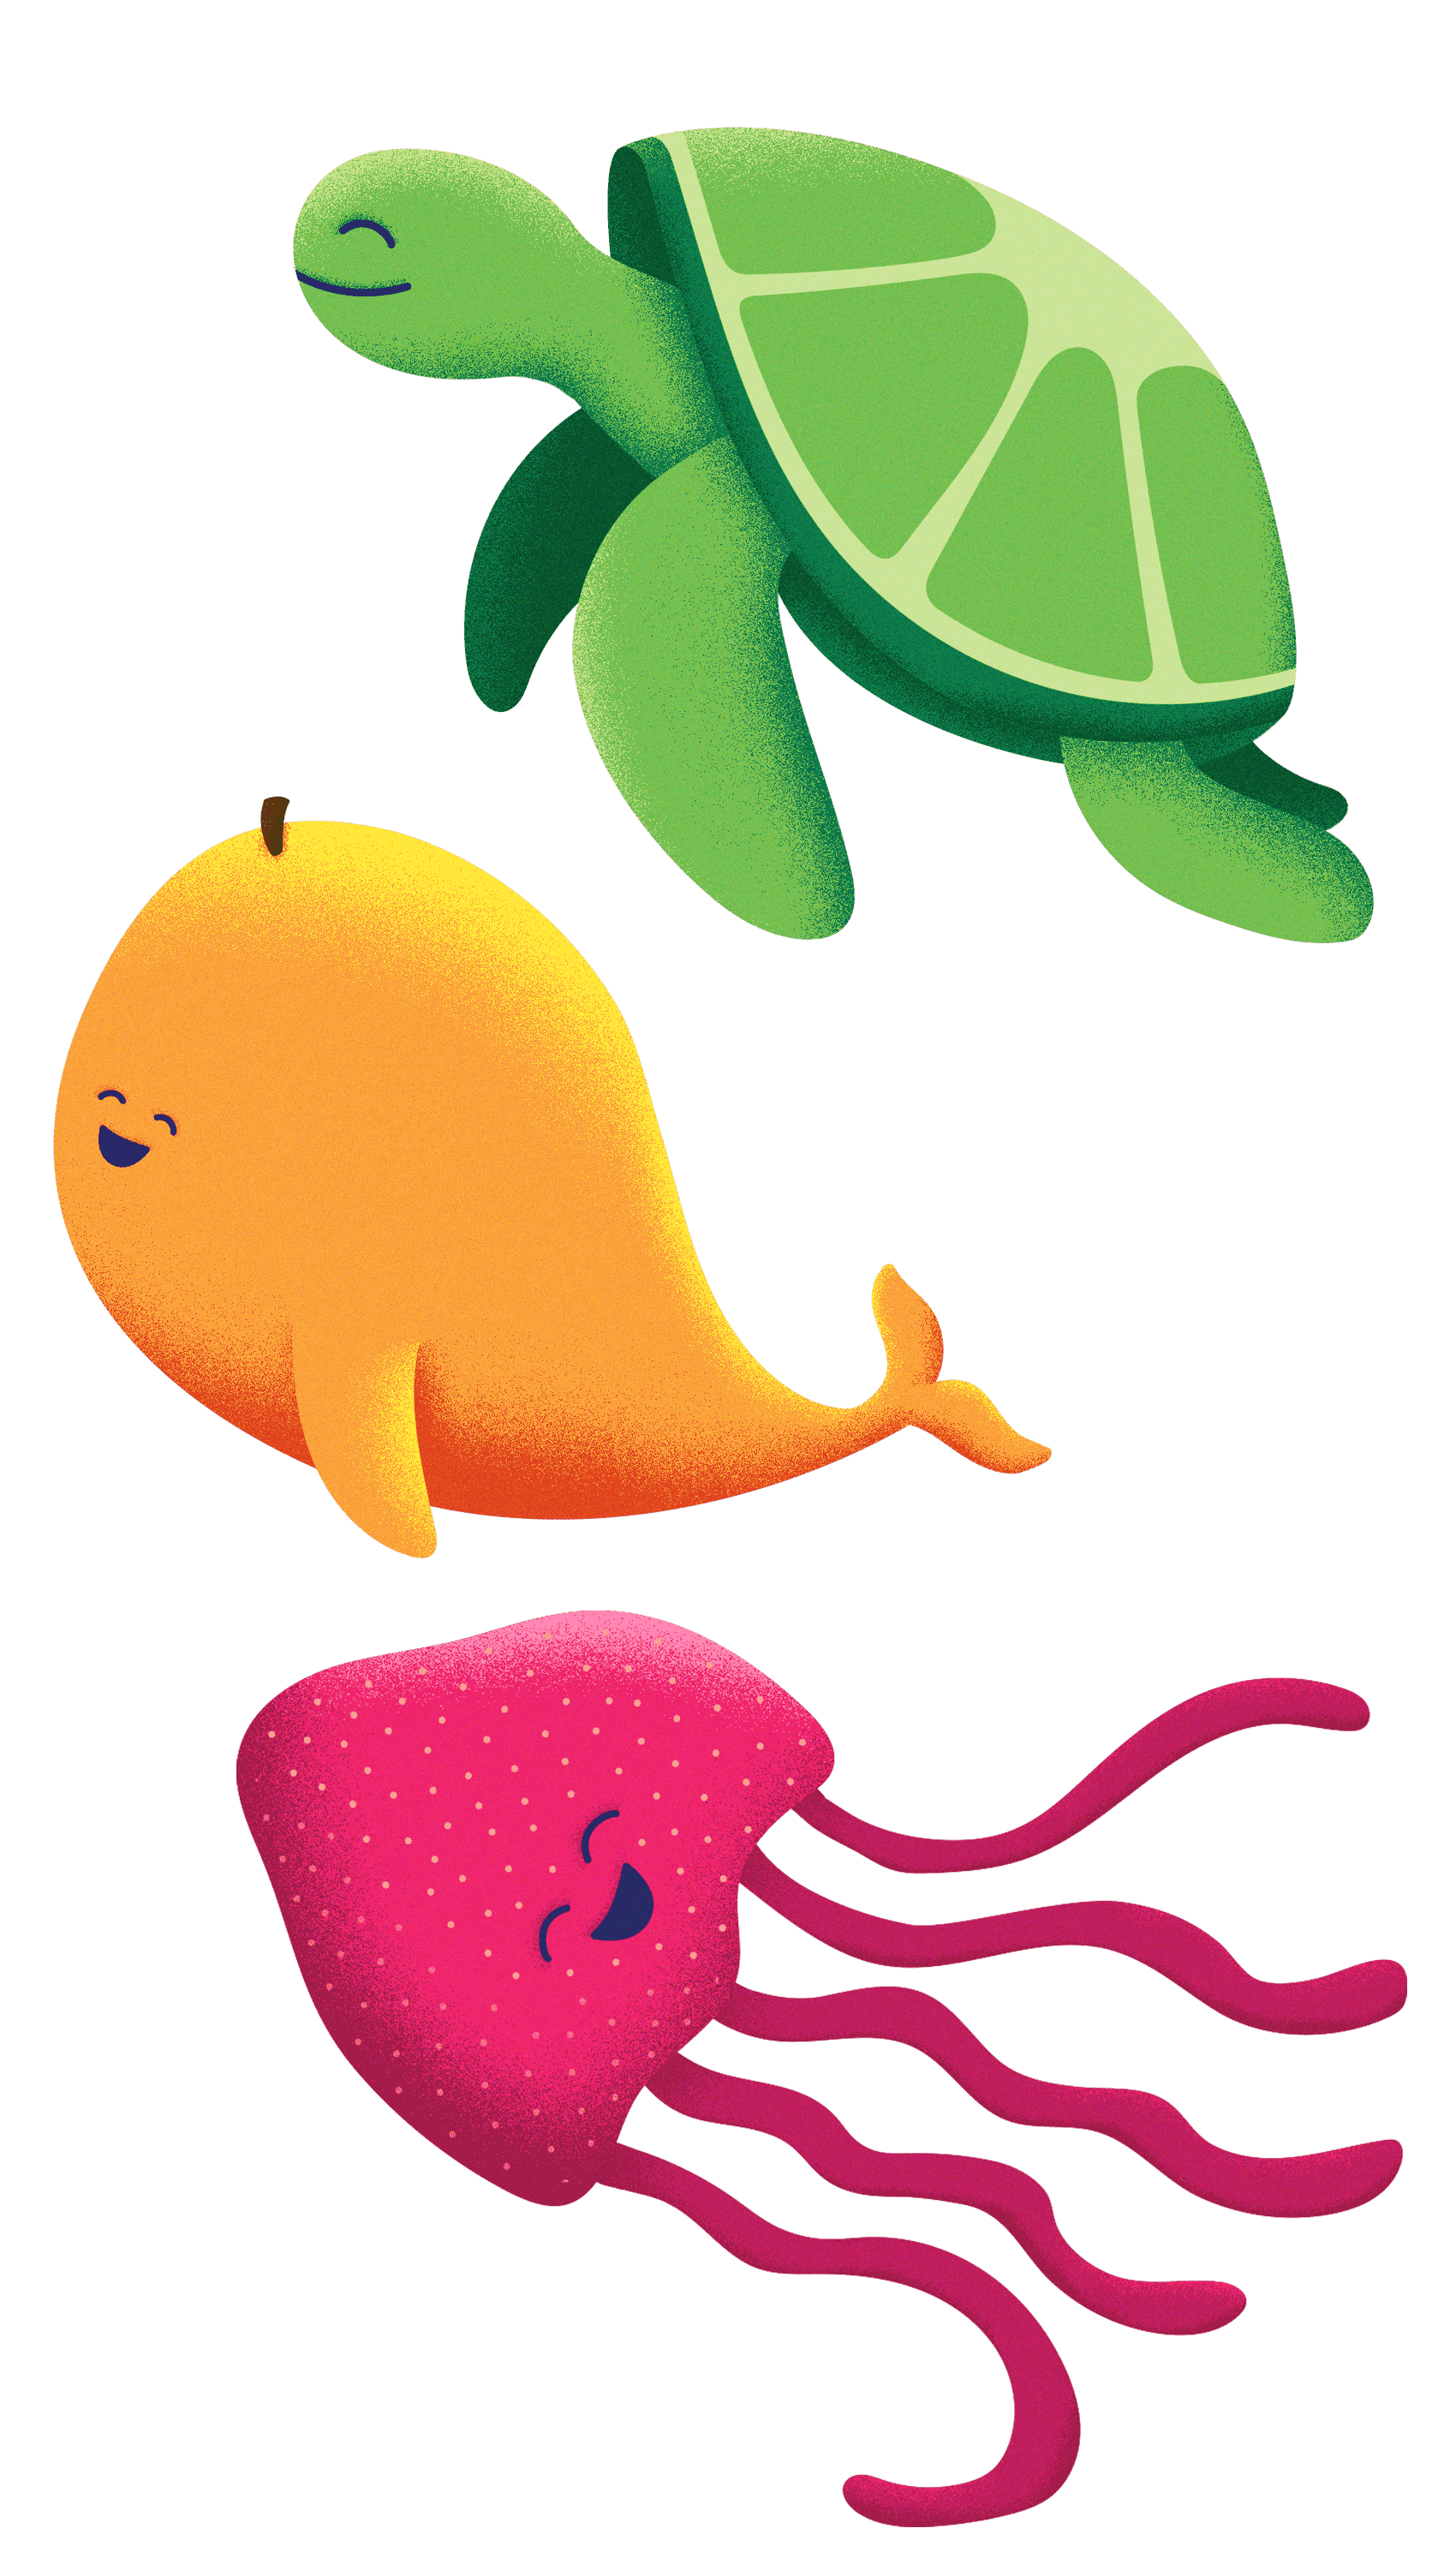 Three cute illustrations of sea creatures combined with fruits. A lime sea turtle, a mango whale, and a strawberry jellyfish.